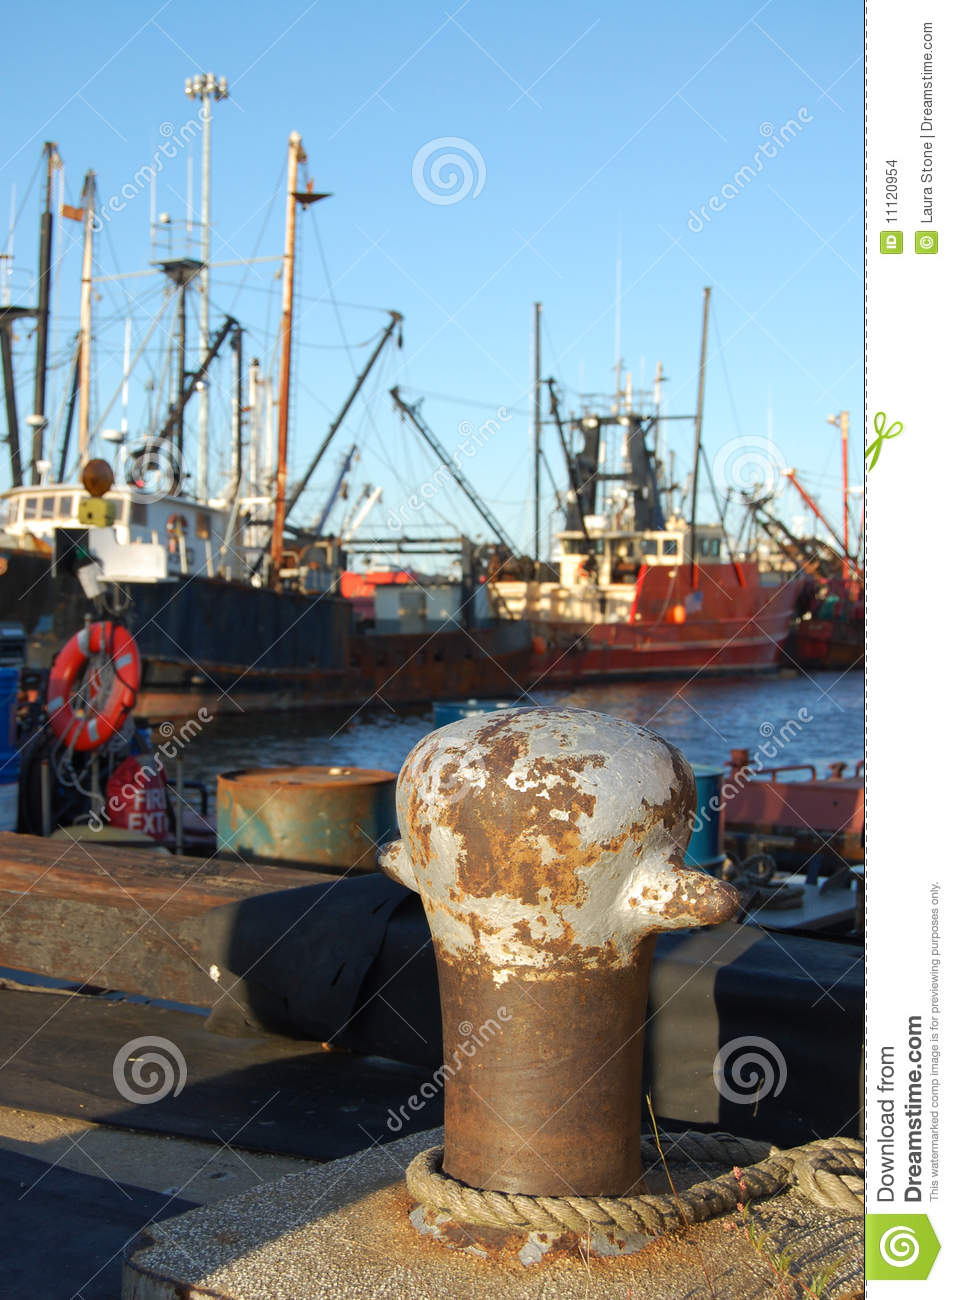 Commercial fishing boats stock images image 11120954 for Mass commercial fishing